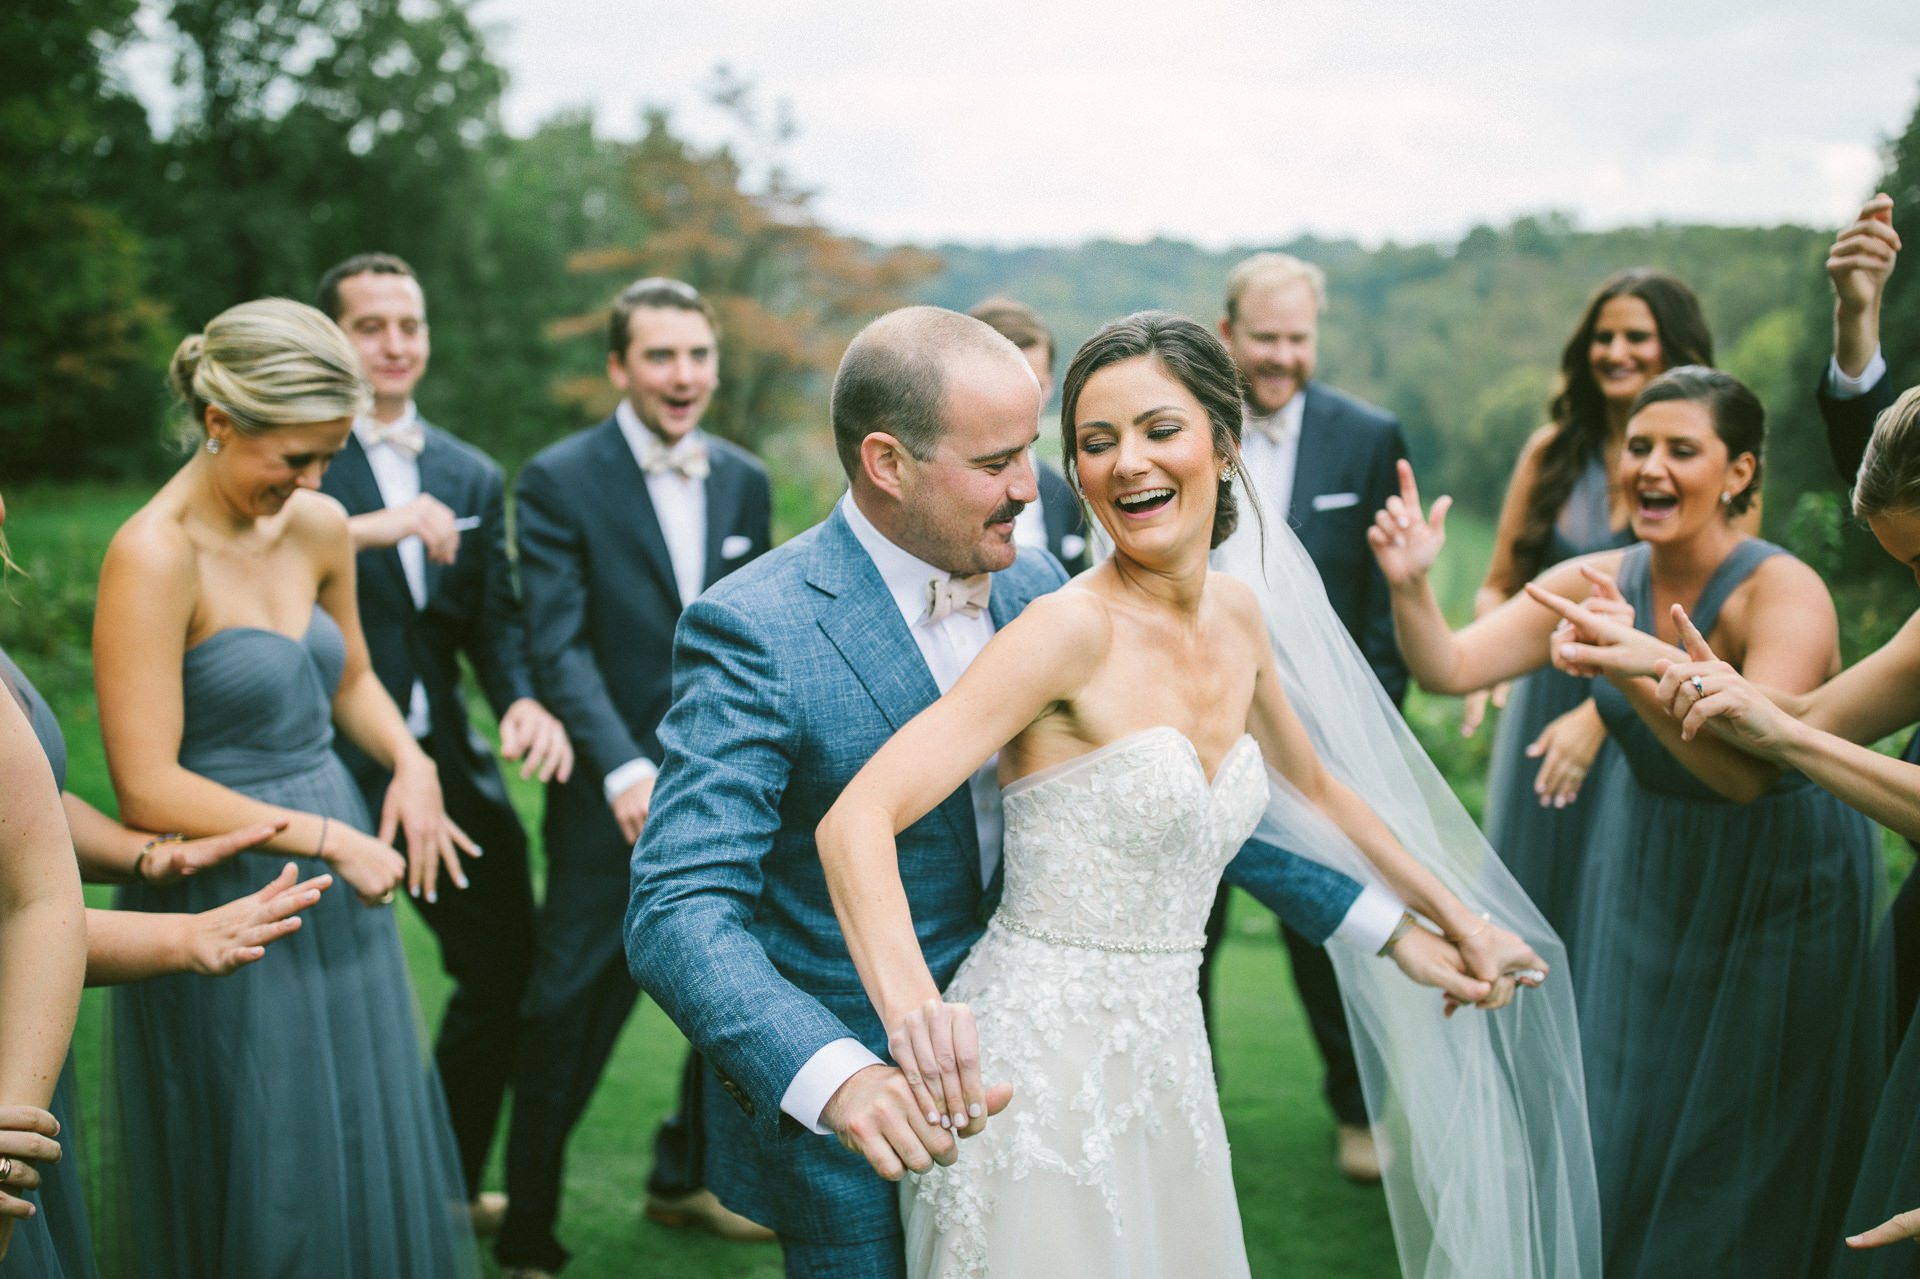 Wedding at Kirtland Country Club in Willoughby 2 17.jpg